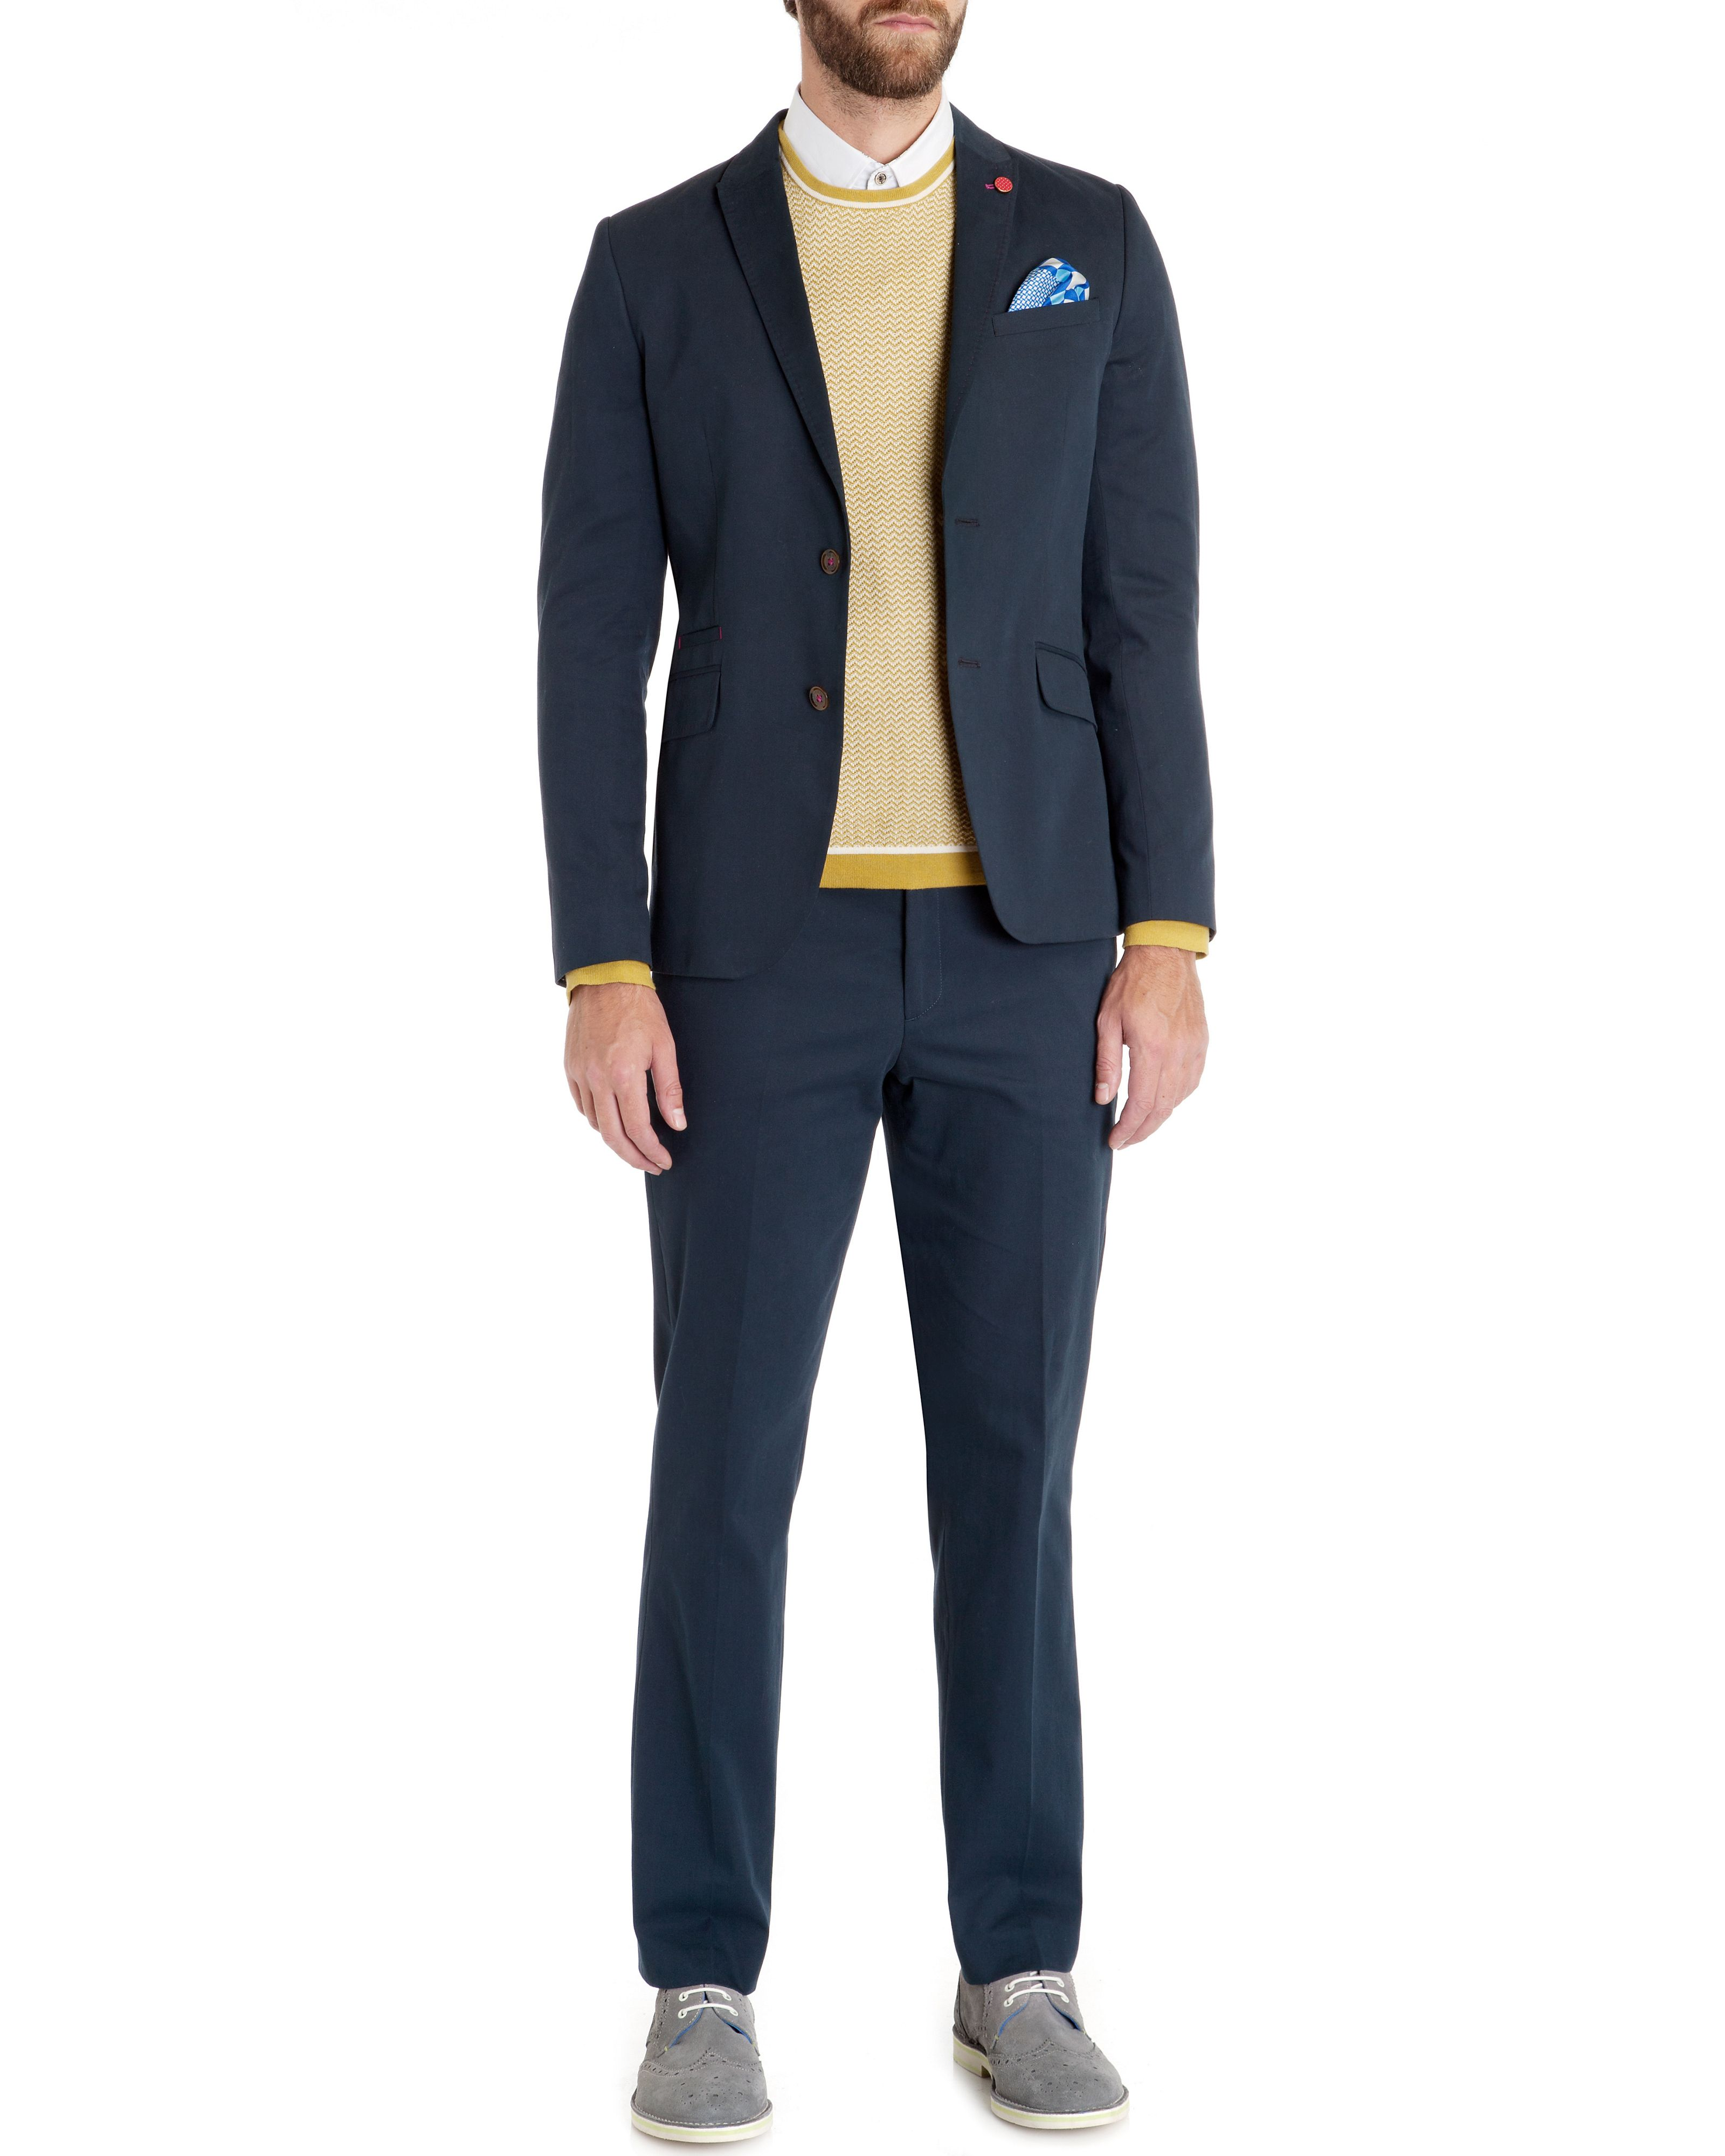 Statrek cotton blazer